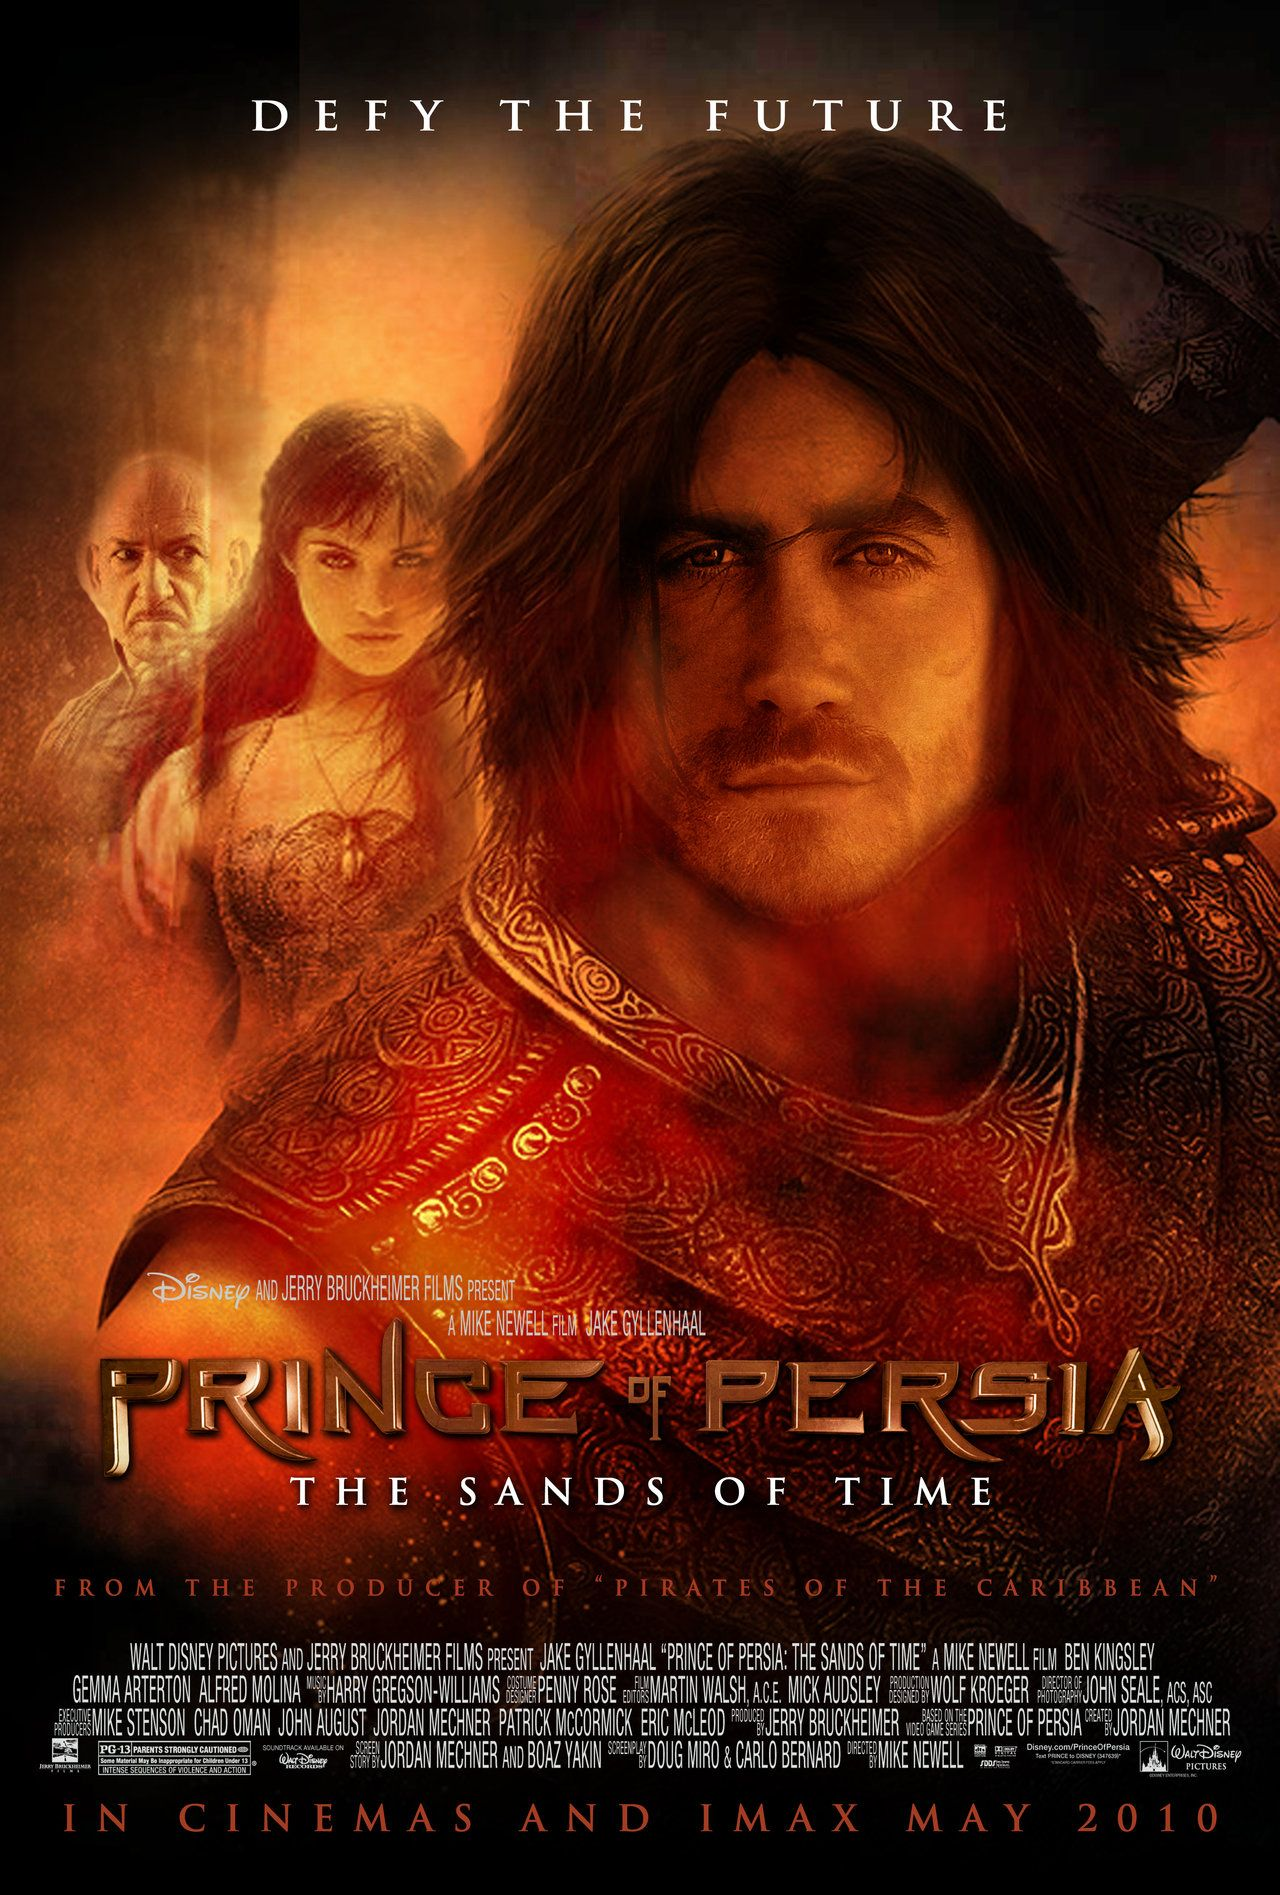 Prince Of Persia The Sands Of Time Really Action Packed And Filmed Partially In Morocco Gorgeous I M Prince Of Persia Movie Lover Shifter Romance